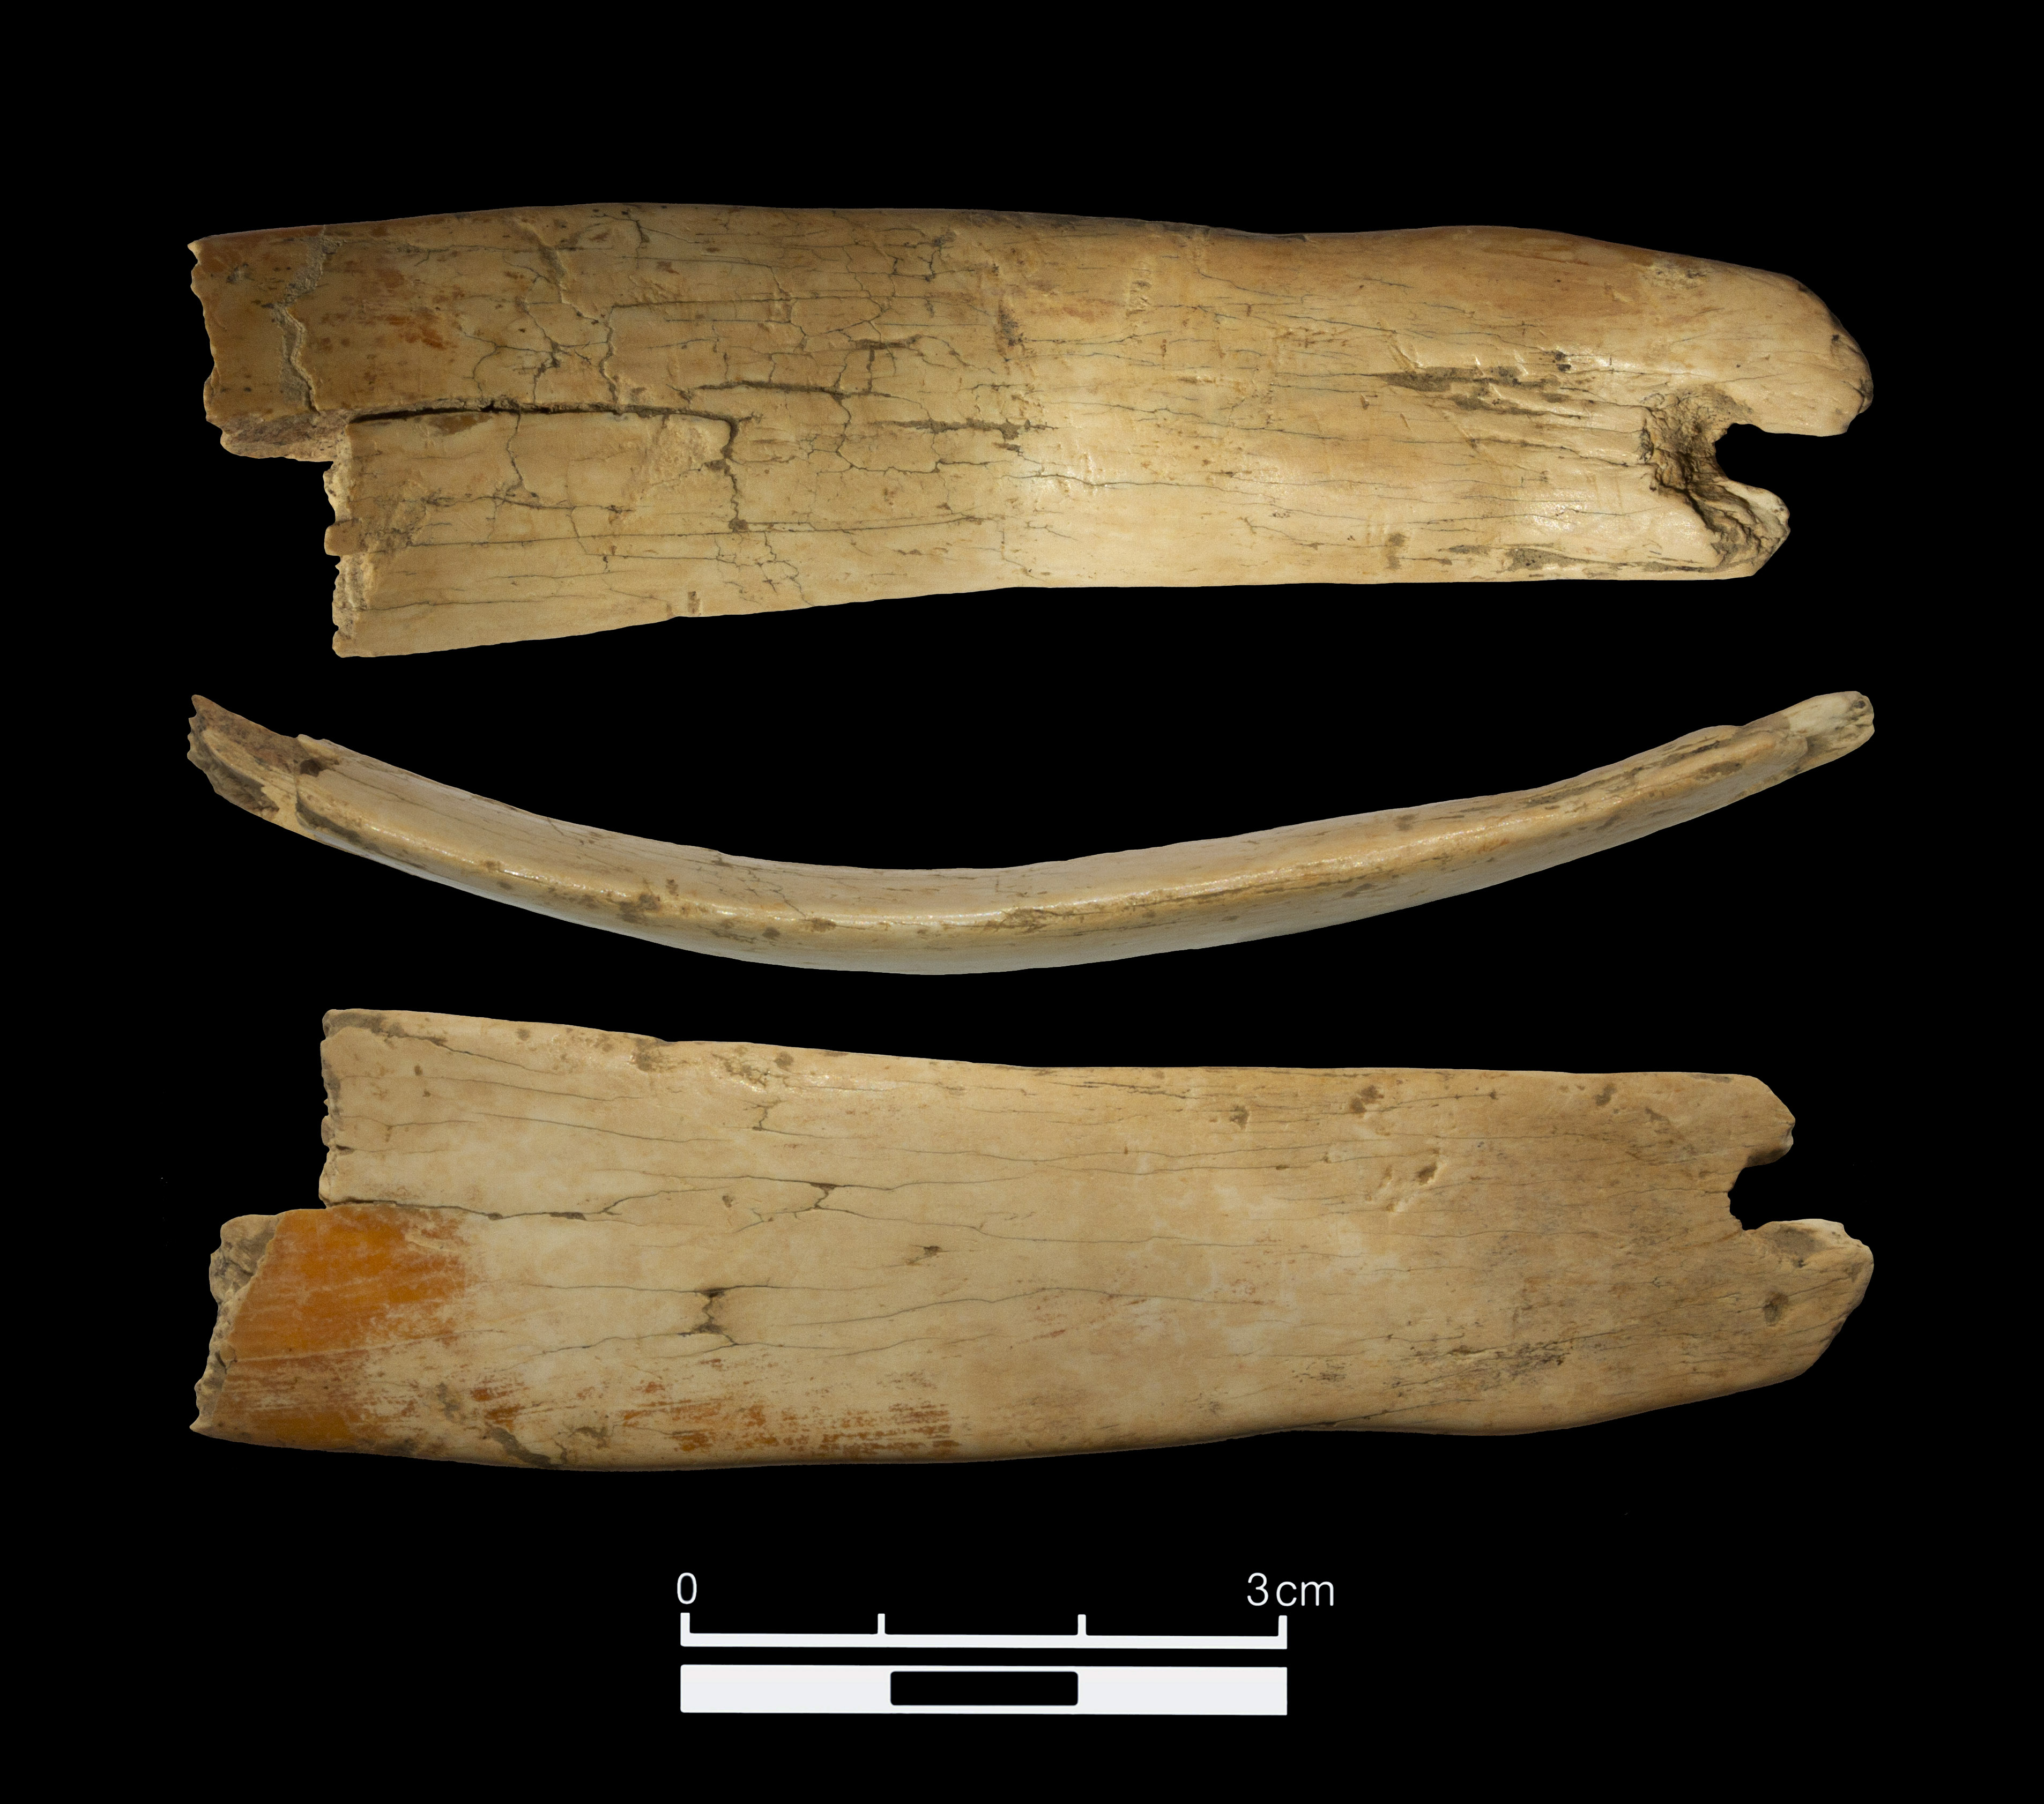 50,000-Year-Old Tiara Made from Woolly Mammoth Ivory Found